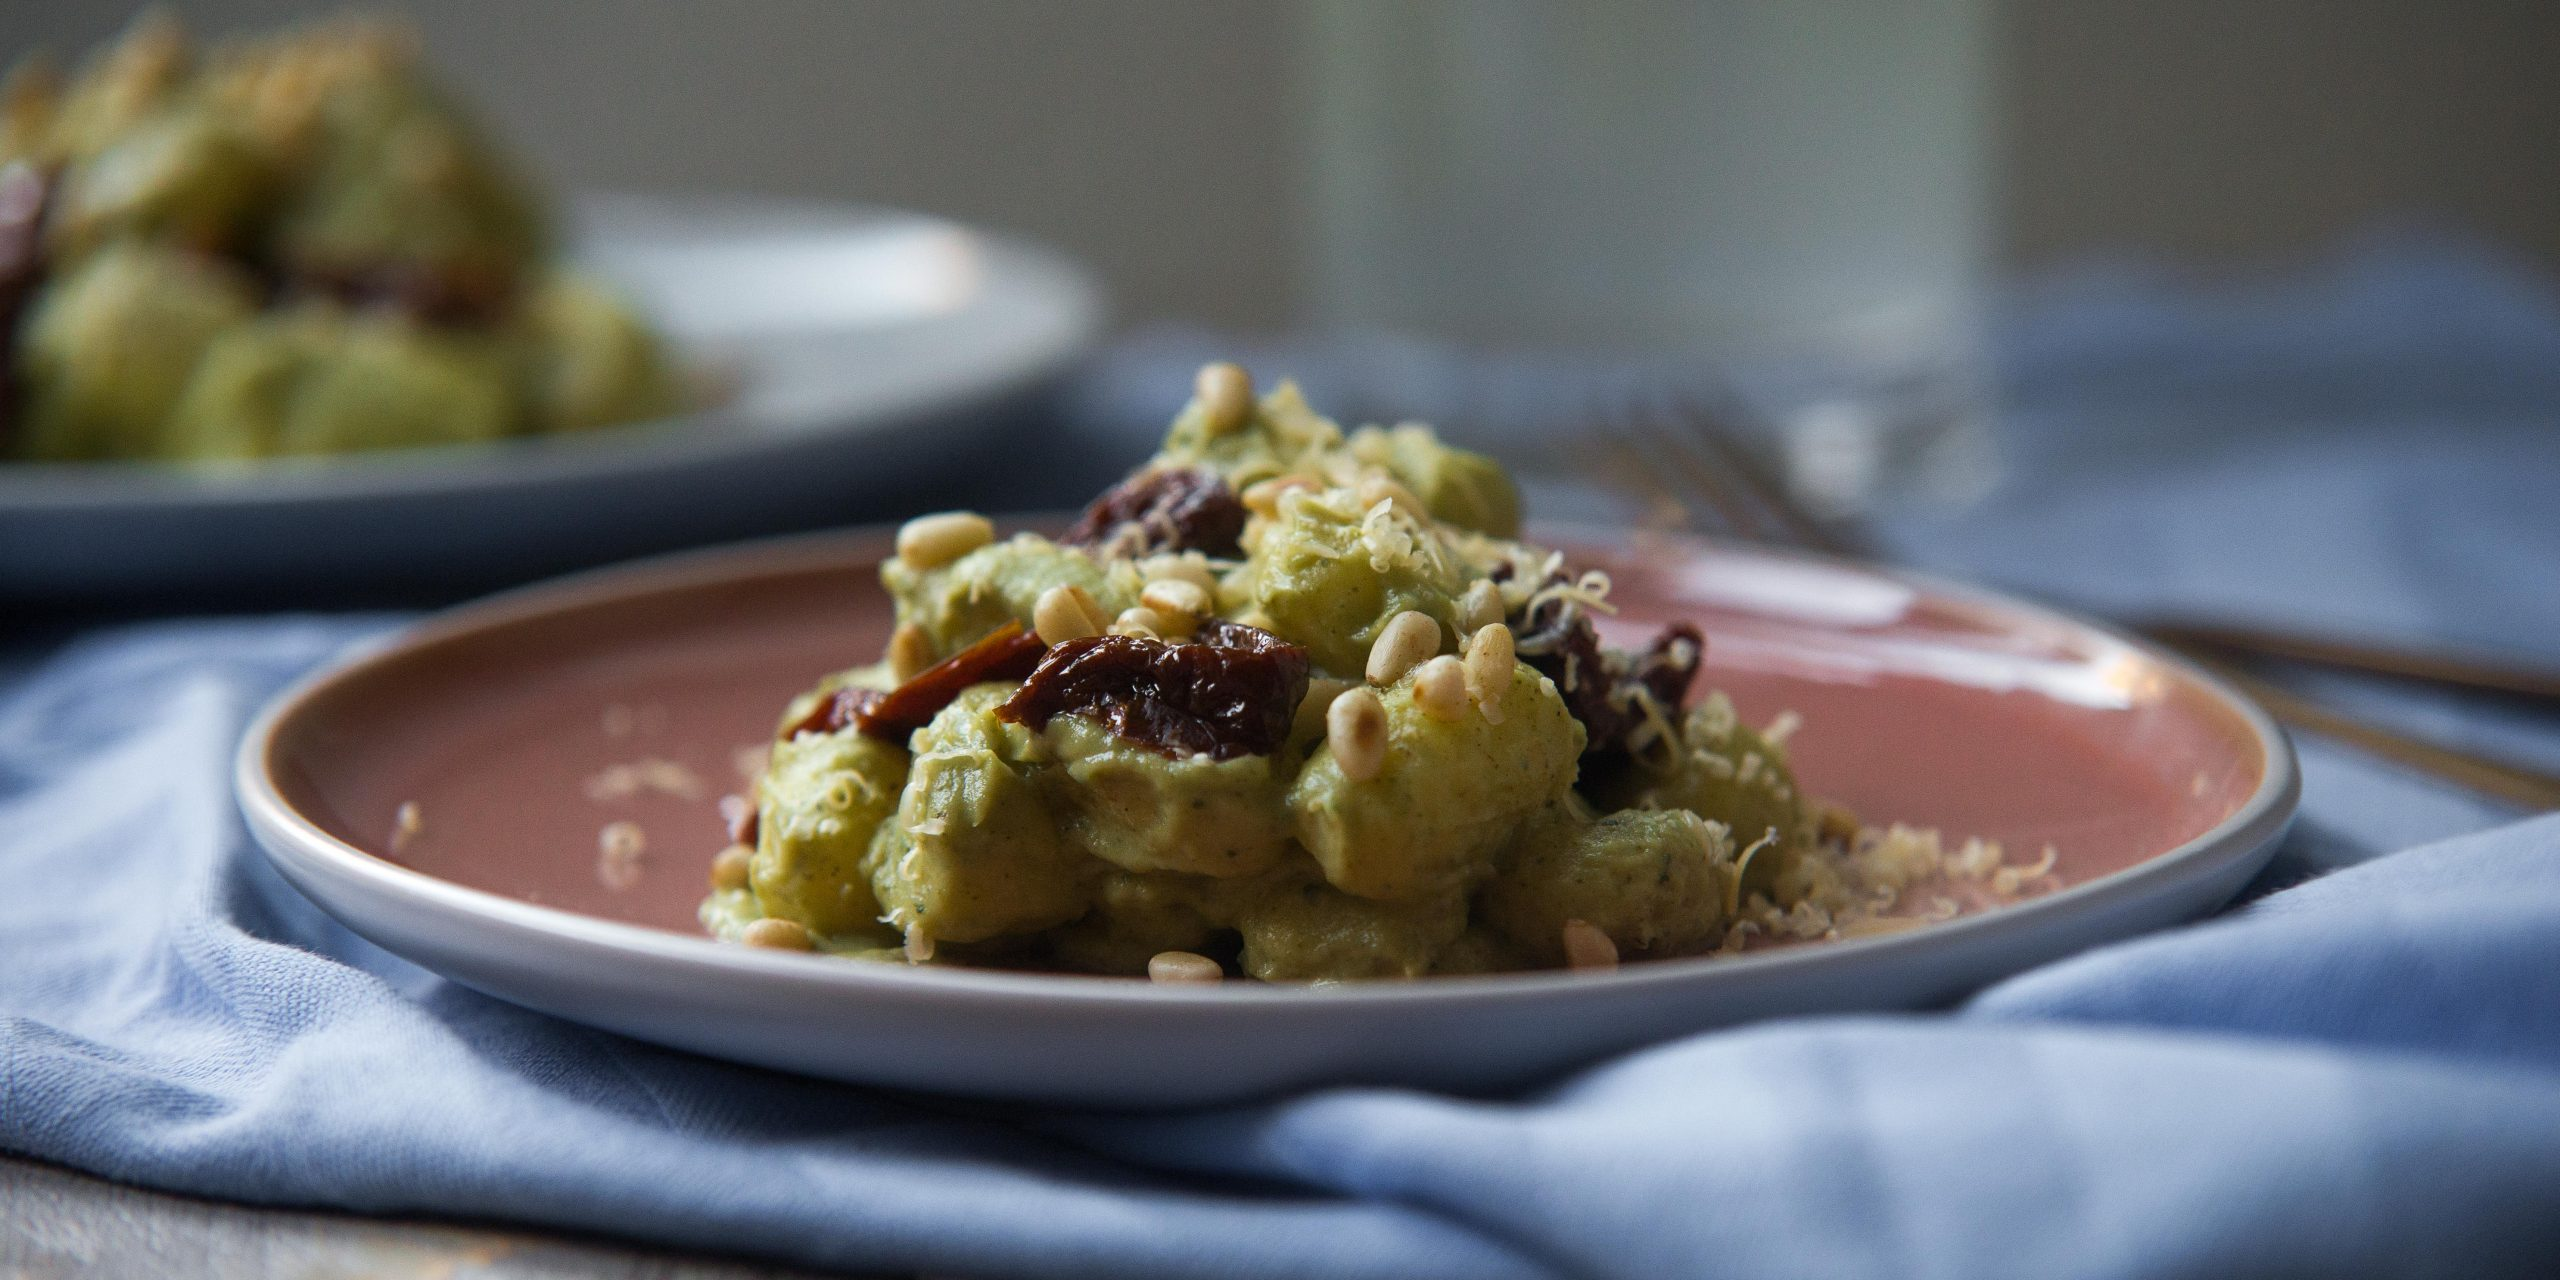 Gnocchi met avocado-broccolisaus uit Luuk's Kitchen, Gnocchi, avocado-broccolisaus, Luuks Kitchen